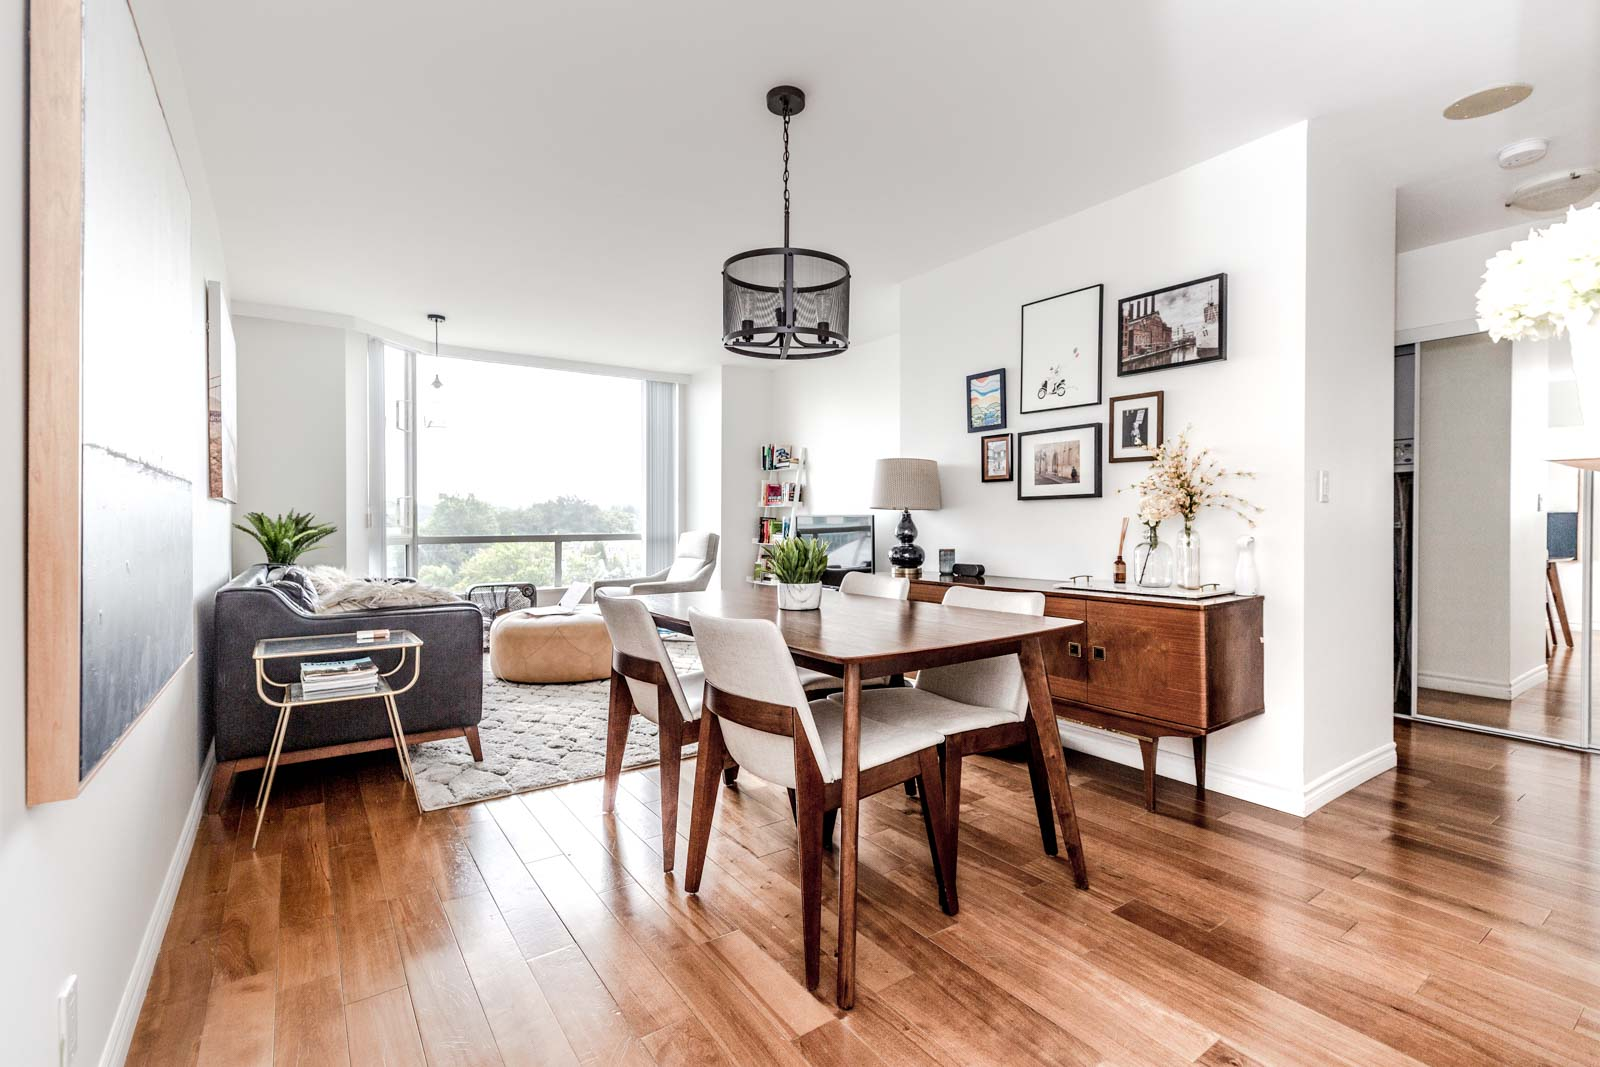 Airy one-bedroom home at Ash and W 11th